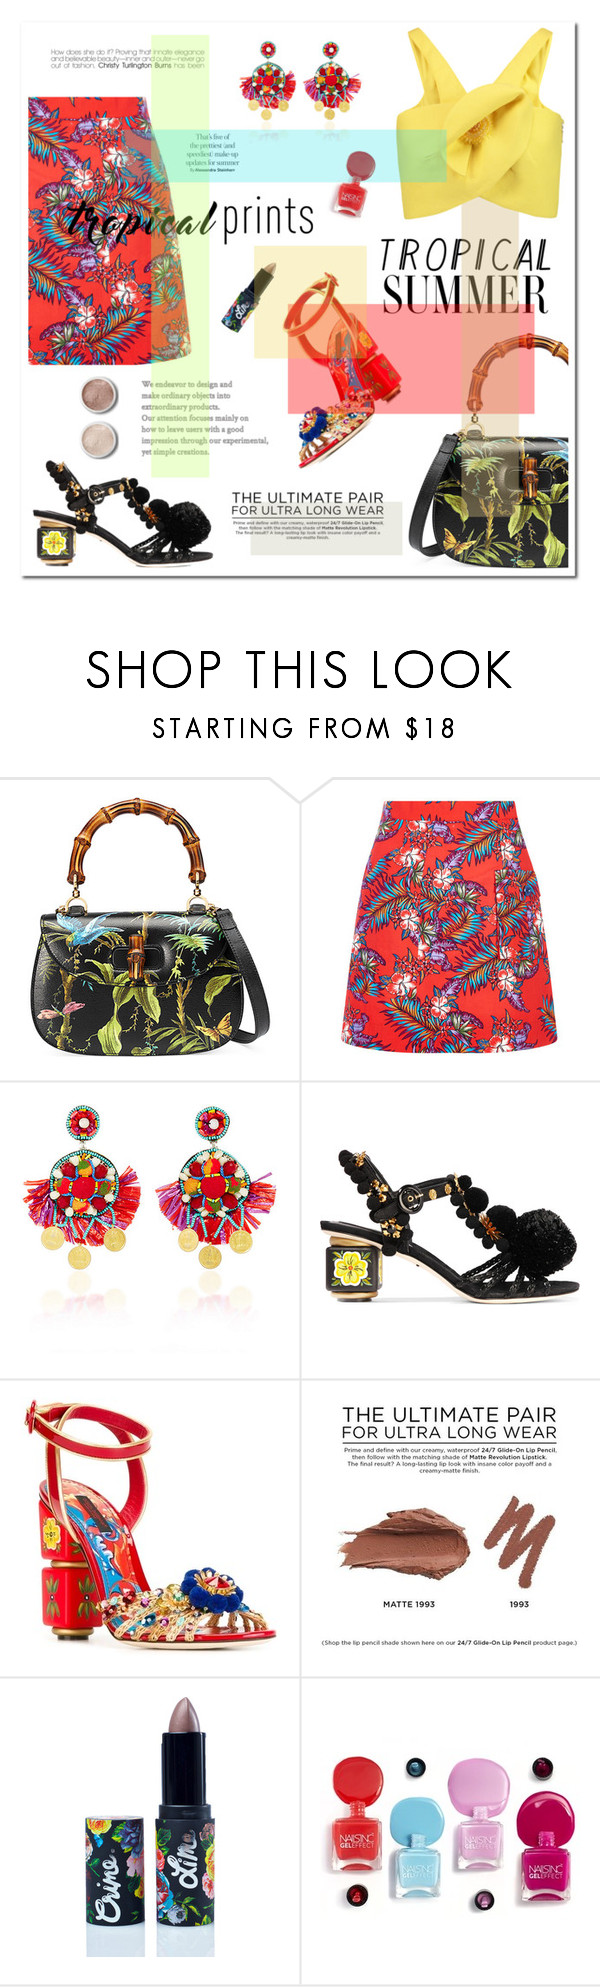 """""""TROPICAL PRINTS"""" by ironono ❤ liked on Polyvore featuring Gucci, House of Holland, Ranjana Khan, Dolce&Gabbana, Urban Decay, Lime Crime, Terre Mère, Delpozo, tropicalprints and polyvoreOOTD"""